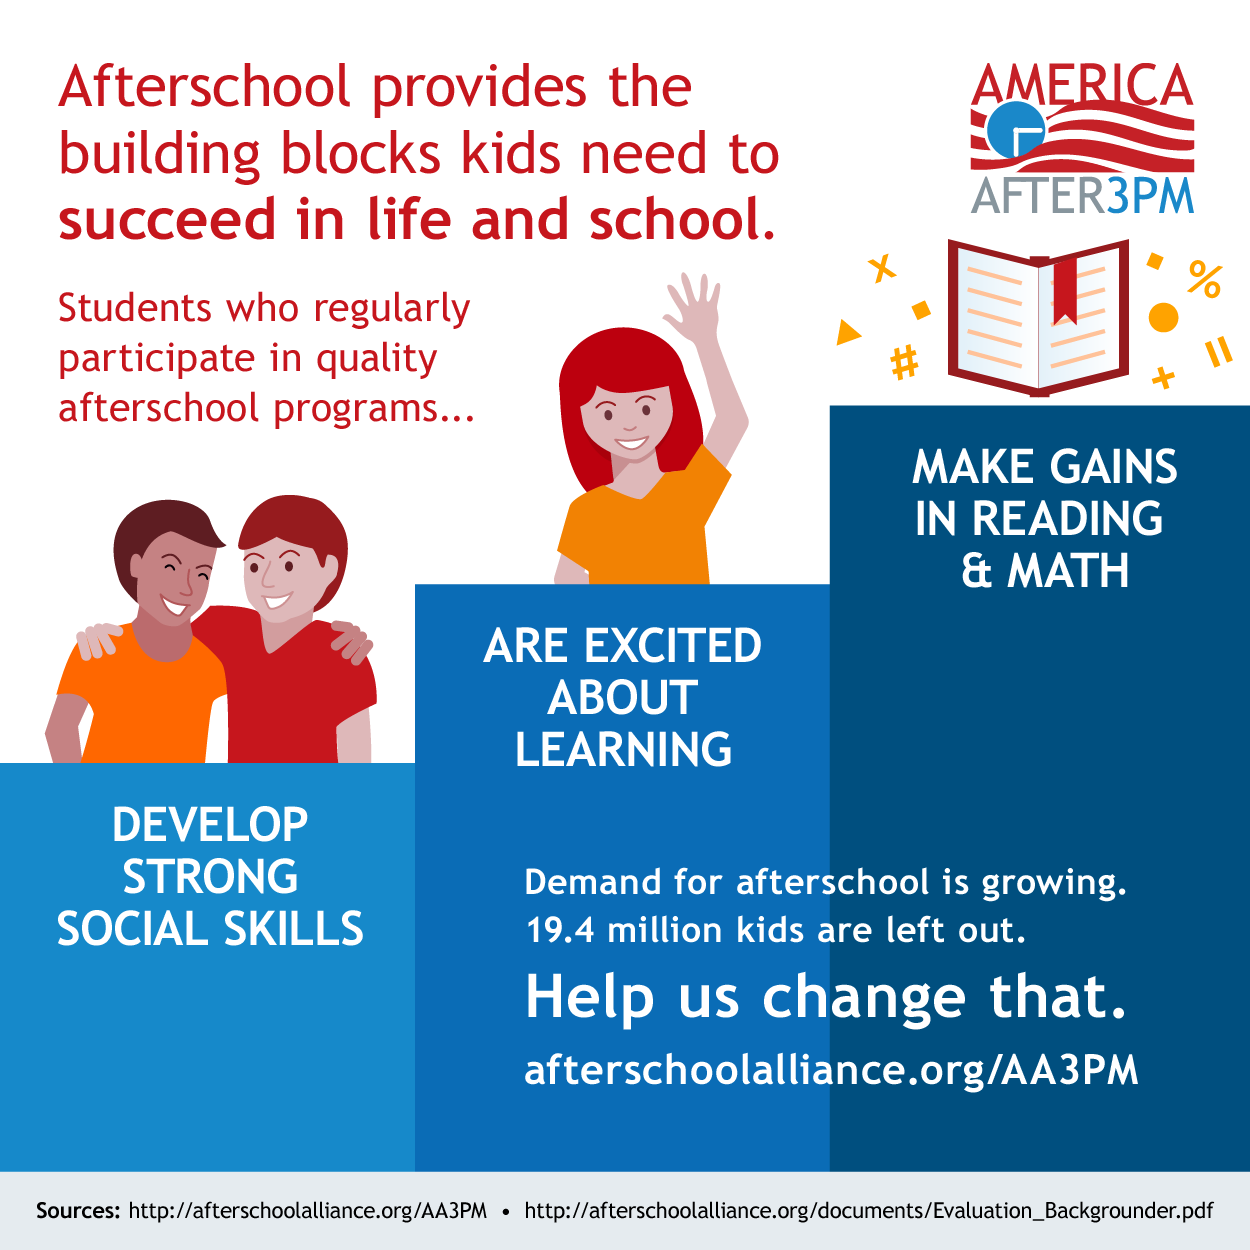 Worksheet After School Learning Programs america after 3pm afterschool provides the building blocks kids need to succeed in life school